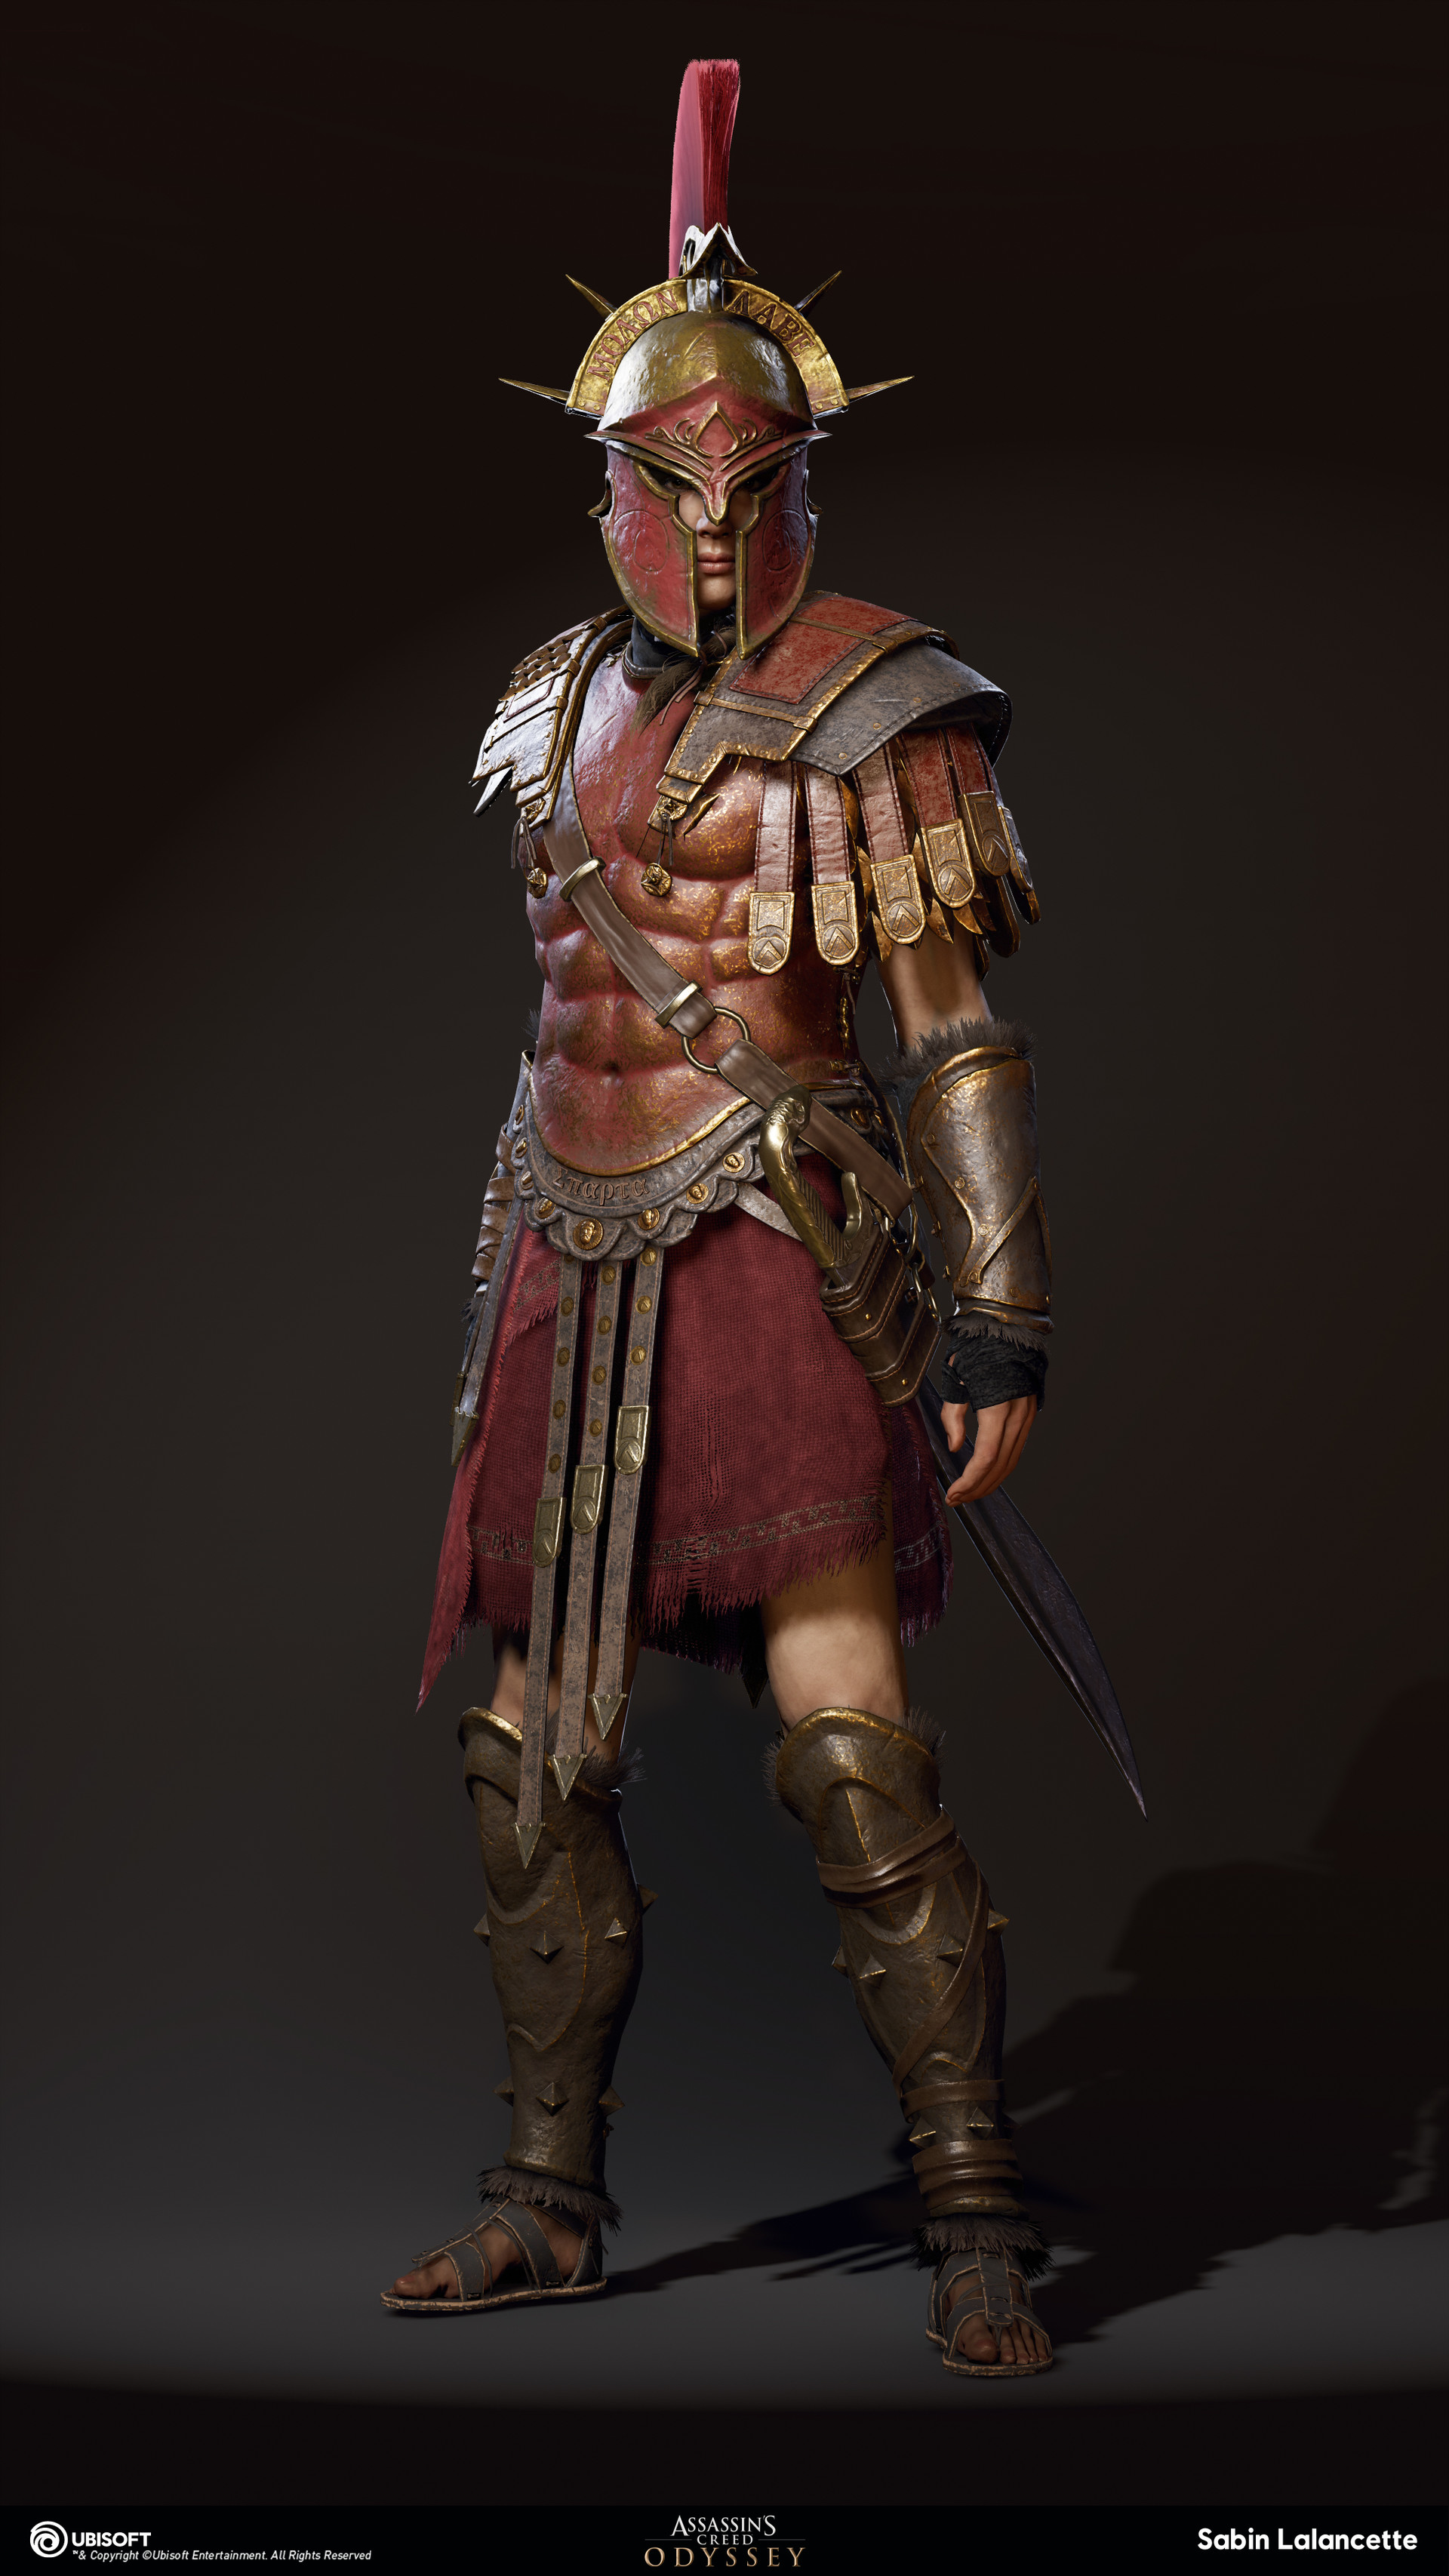 assassins creed odyssey kassandra all outfits